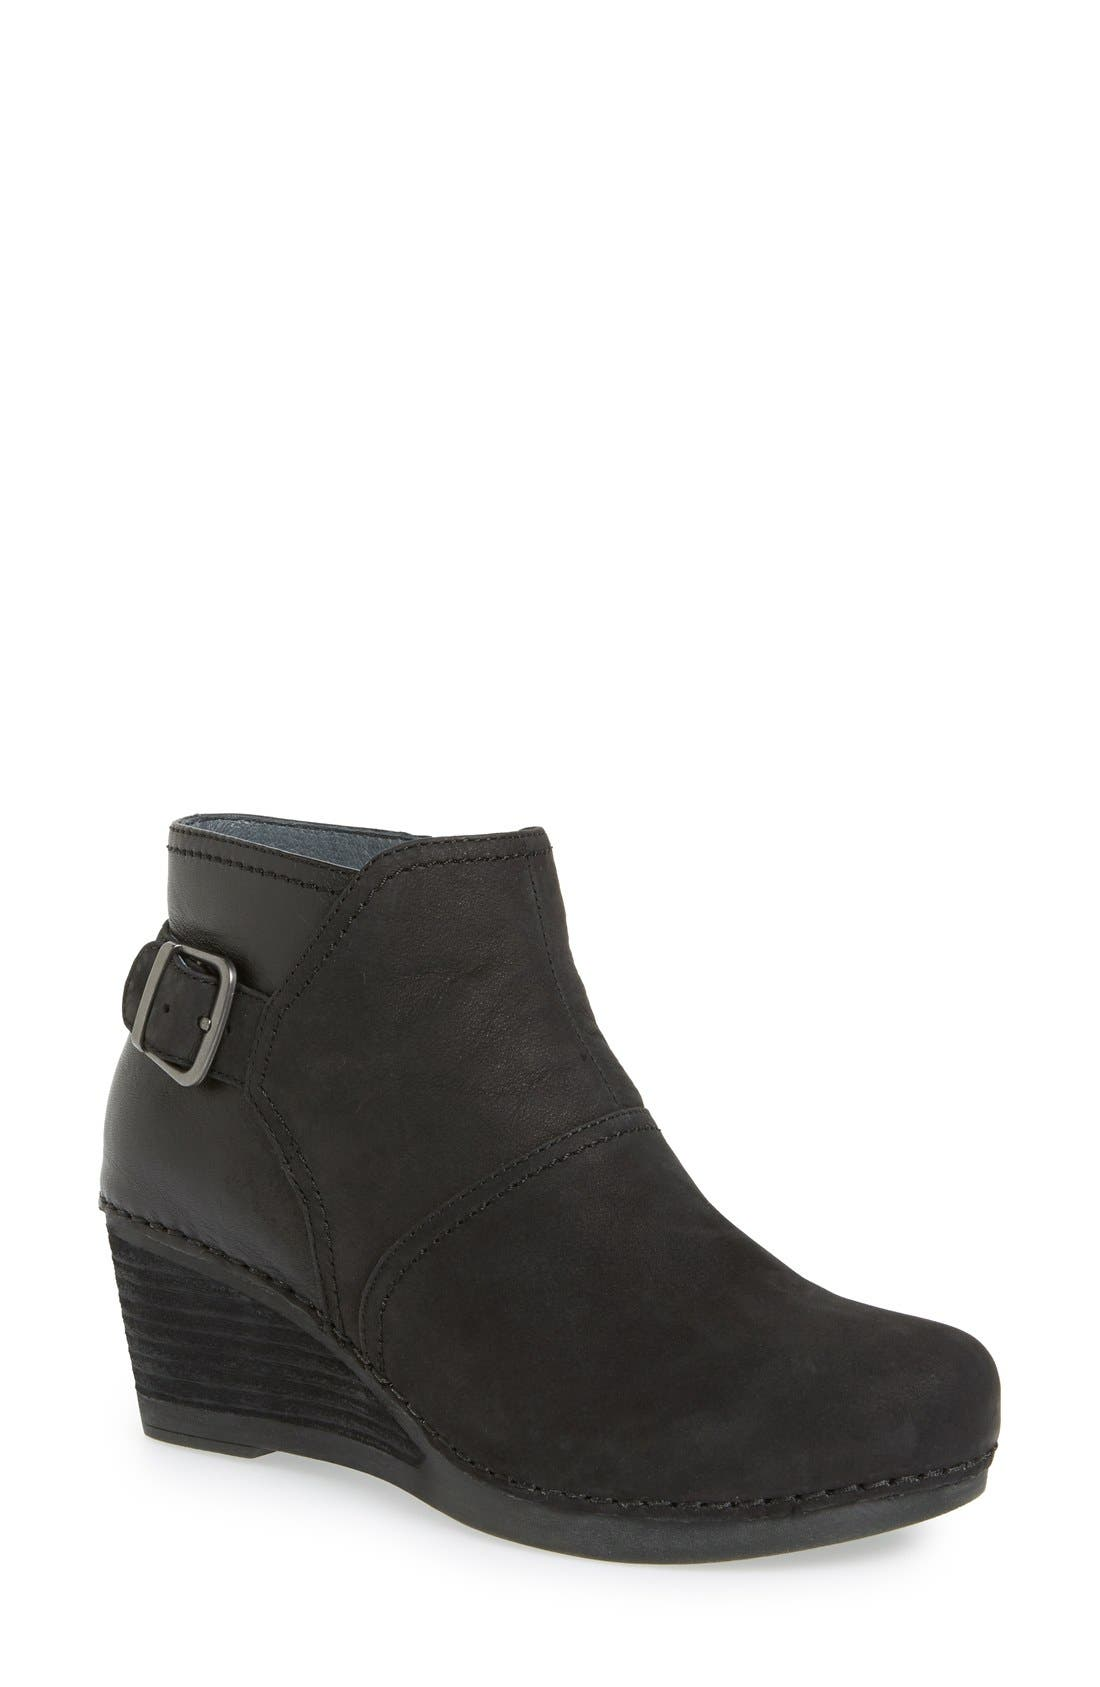 'Shirley' Wedge Bootie,                             Main thumbnail 1, color,                             001